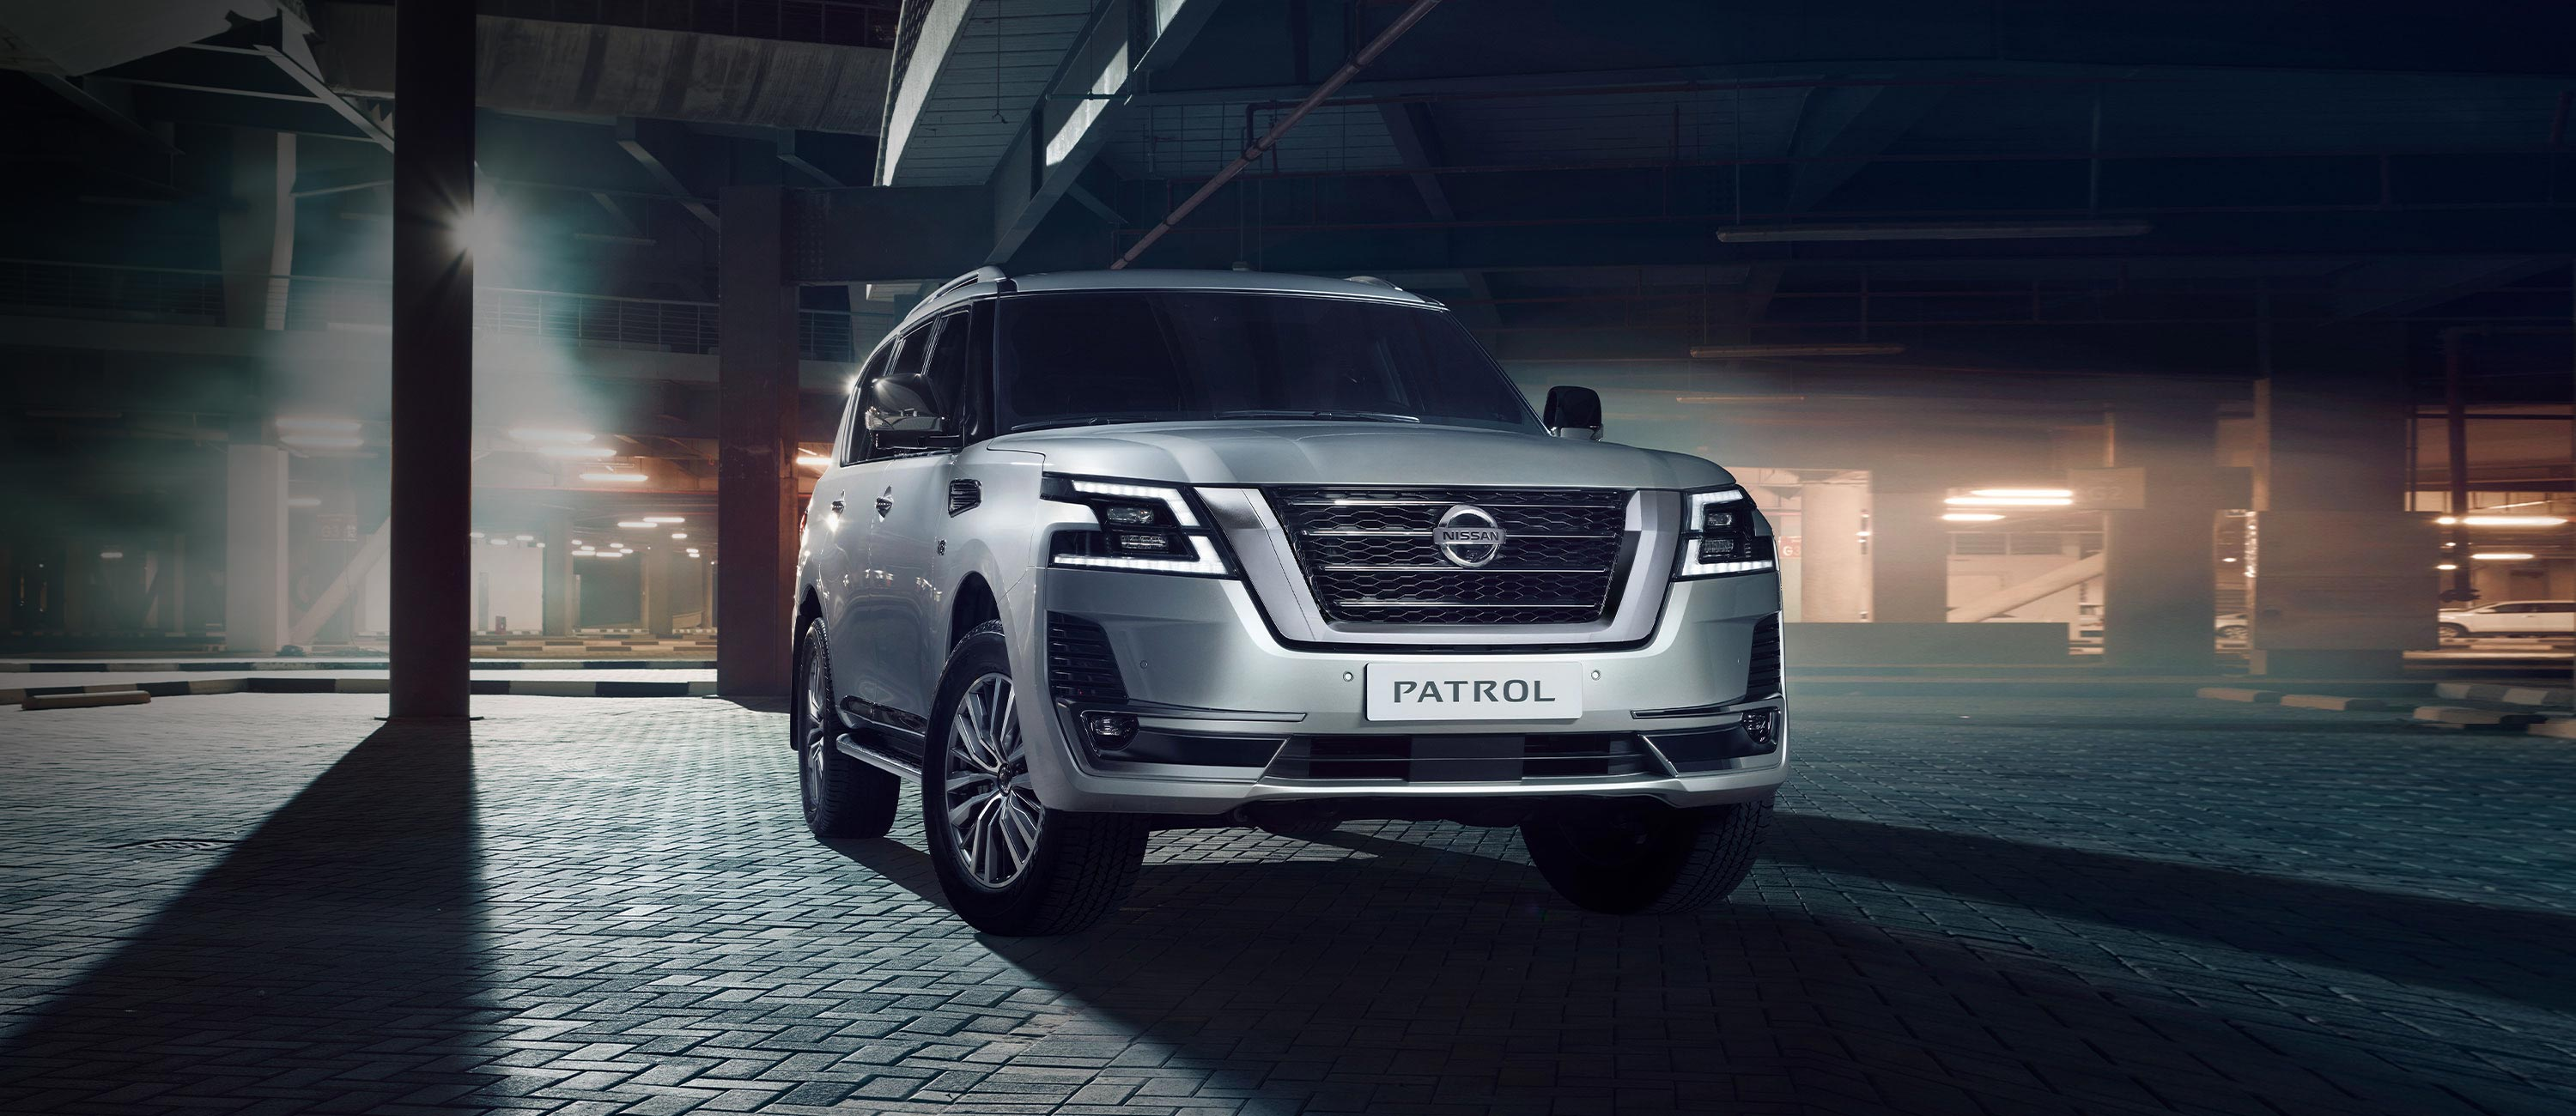 2020 Nissan Patrol The Legendary 4wd Suv In The City Off Road Nissan Egypt